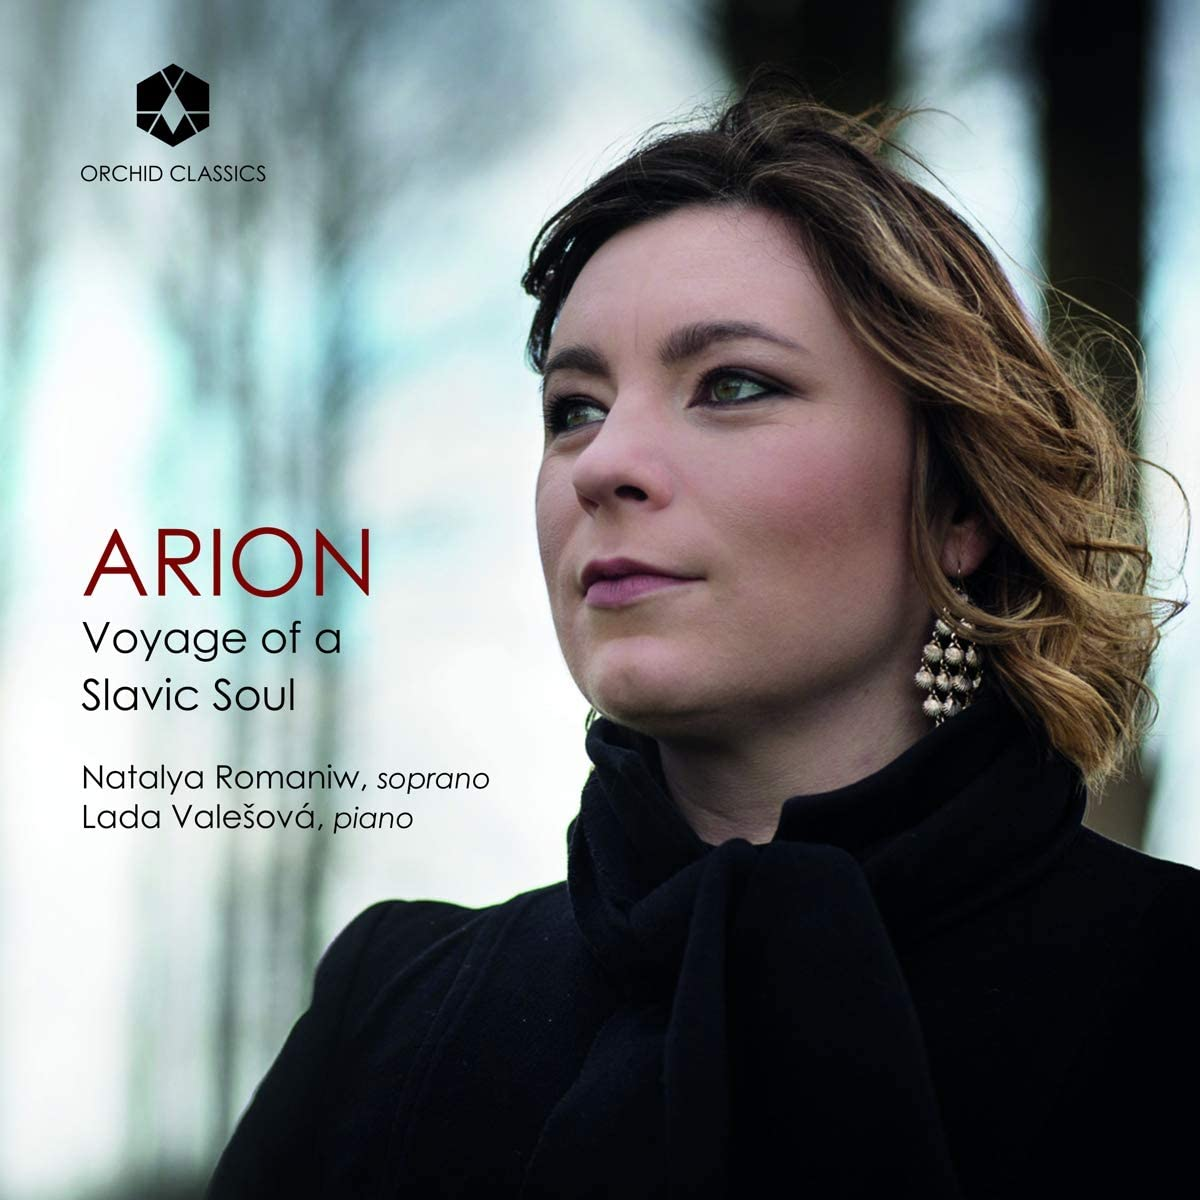 Review of Natalya Romaniw: Arion - Voyage of a Slavic Soul